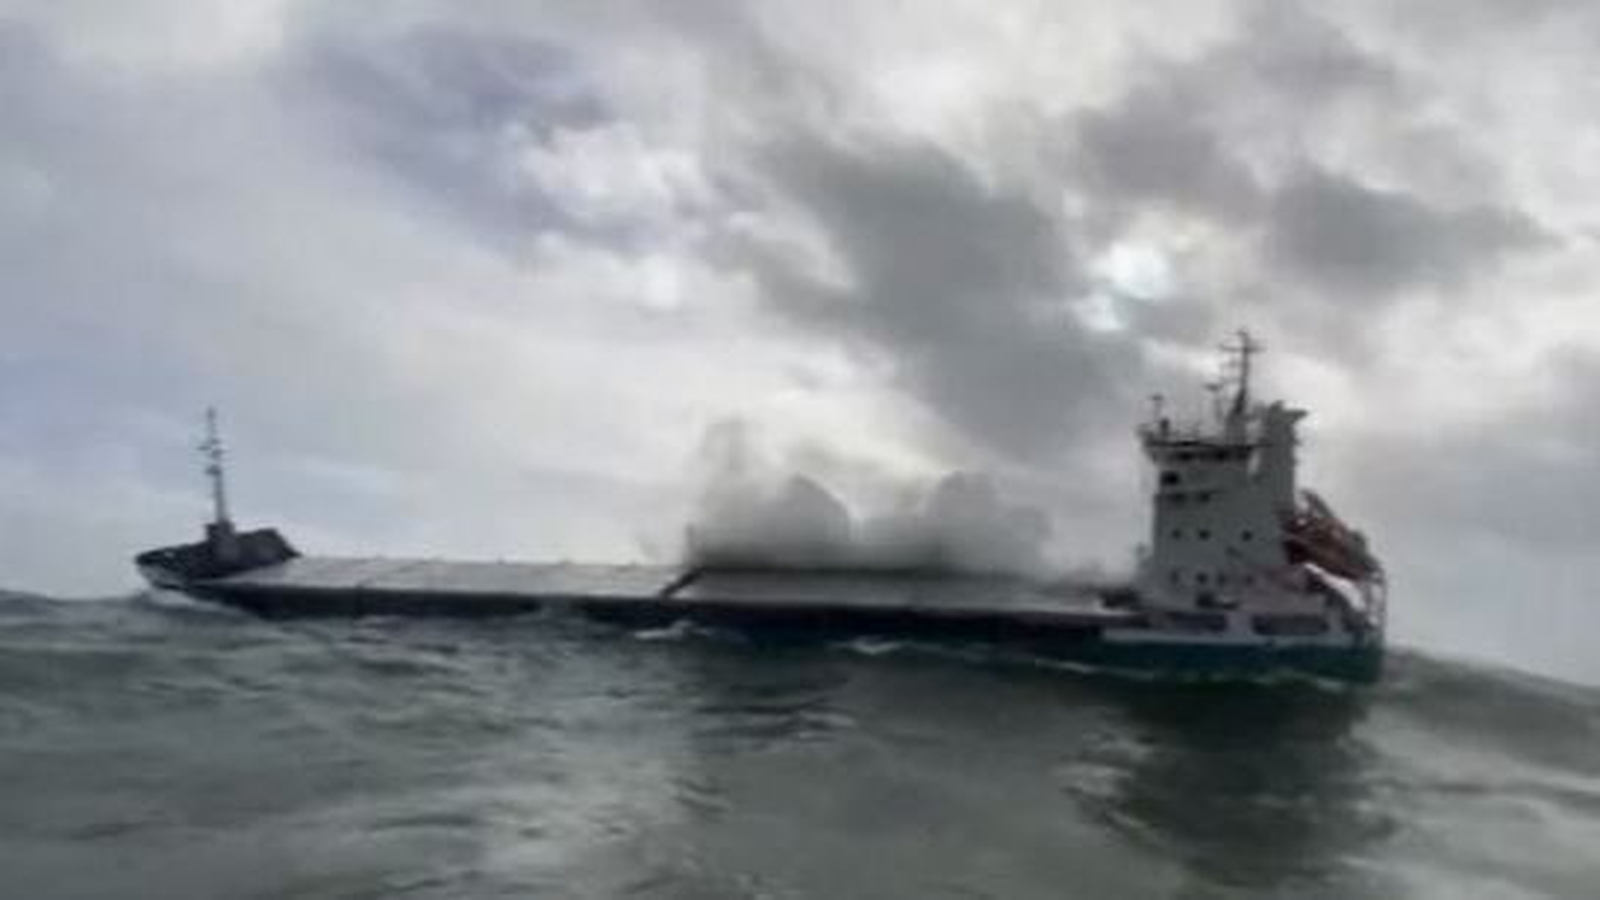 Efforts to tow cargo ship with engine failure to resume